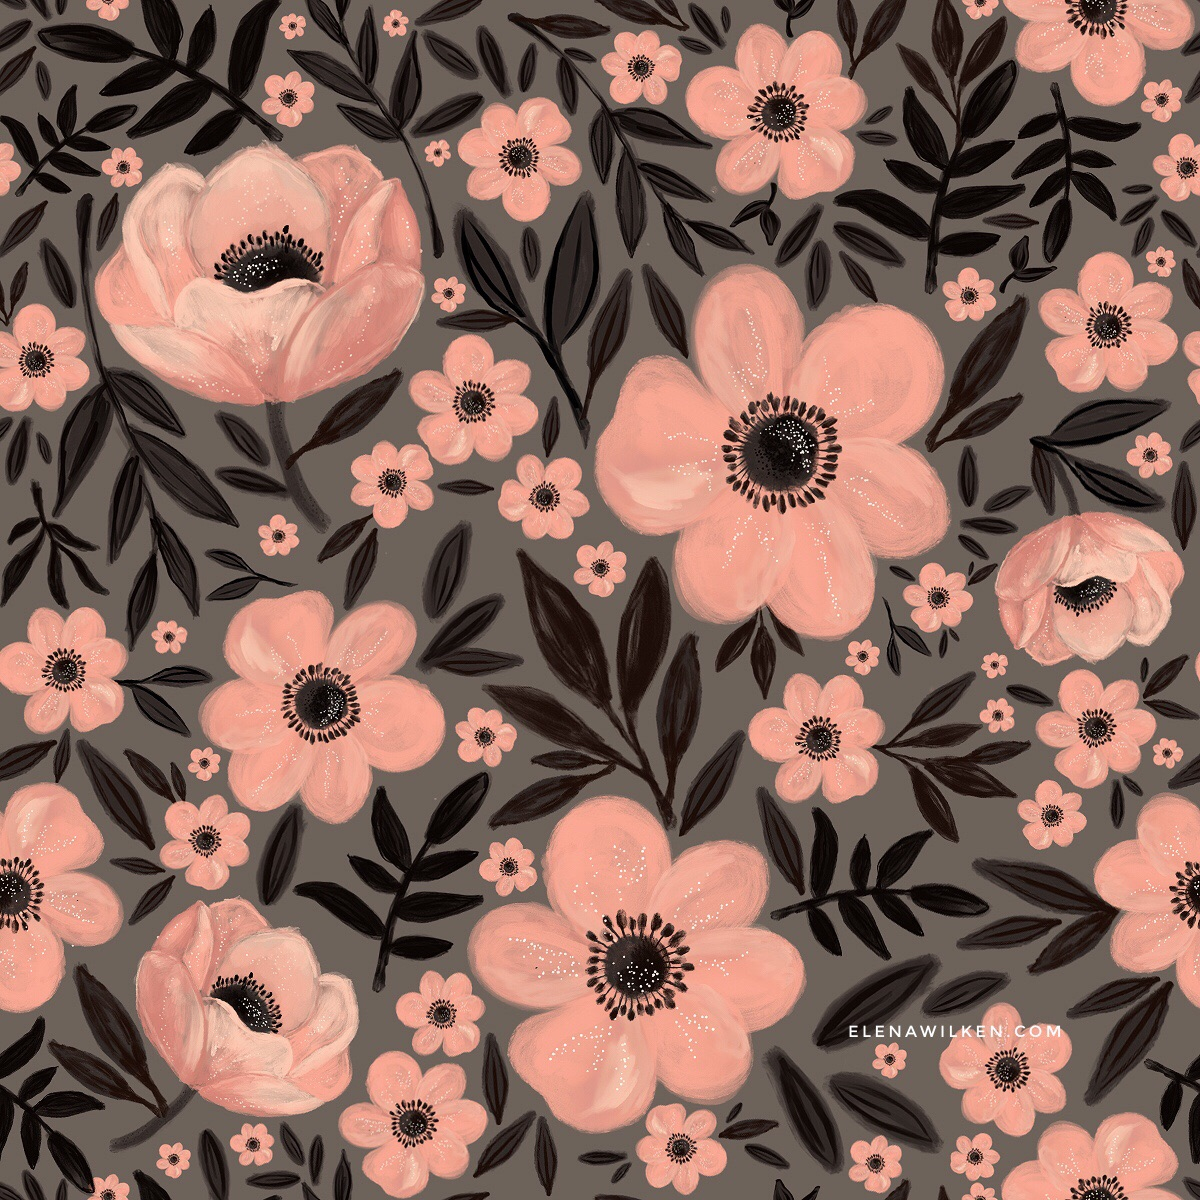 Anemones - Language of Flowers Alphabet /// matching surface pattern design in warm charcoal